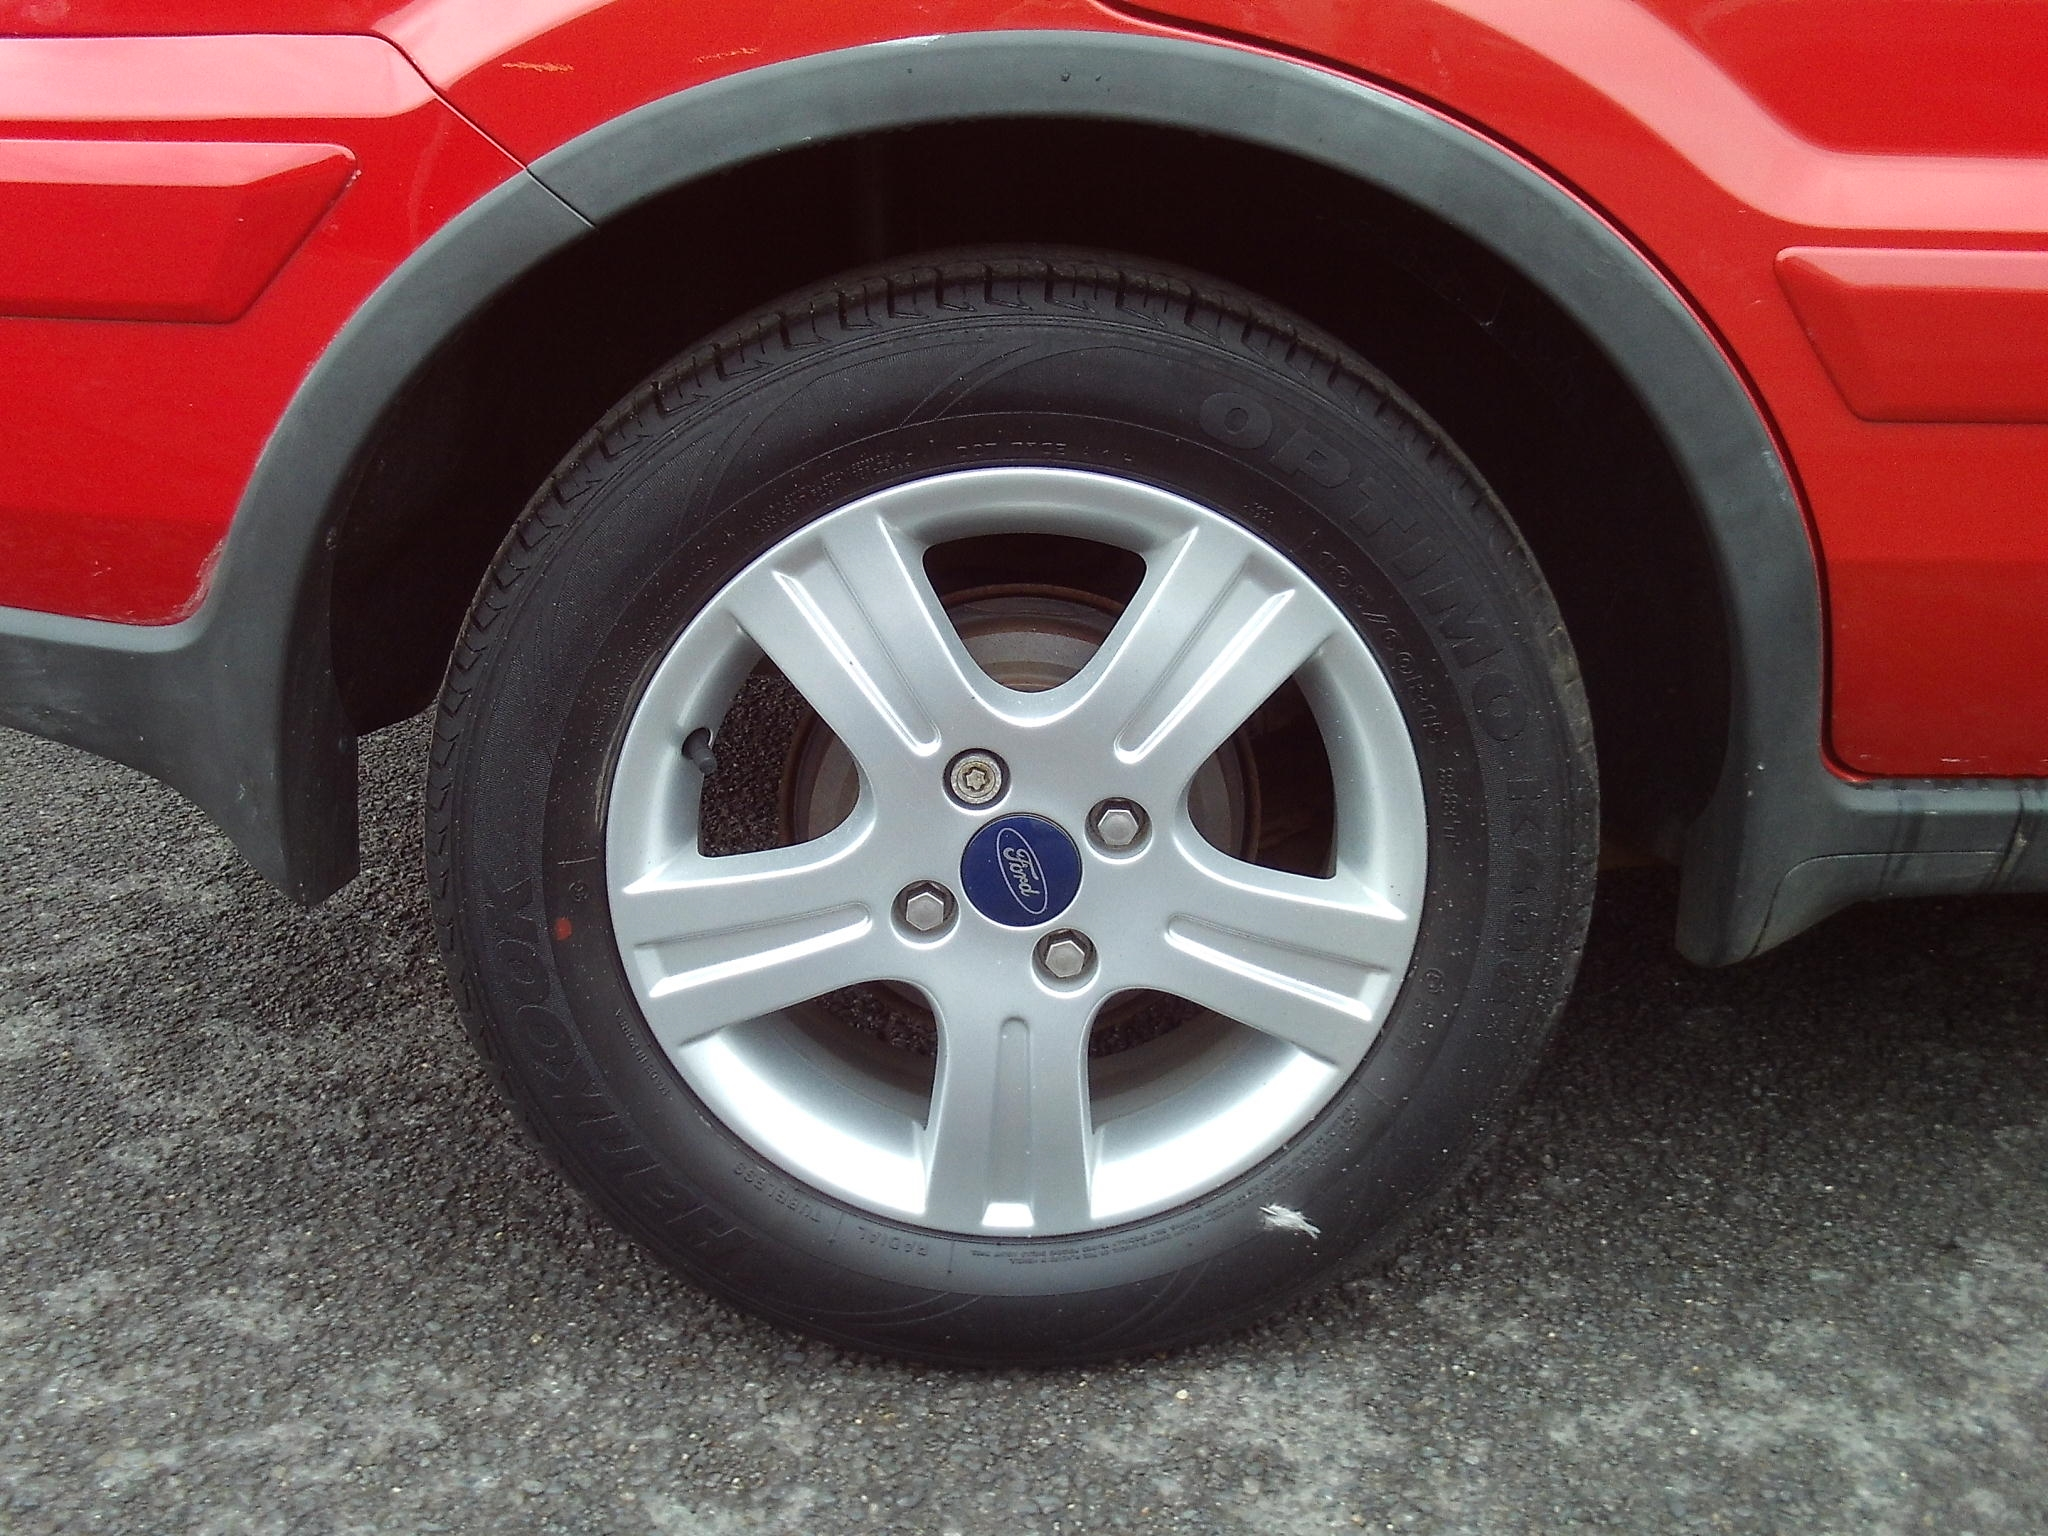 Ford Fusion: Tyre care